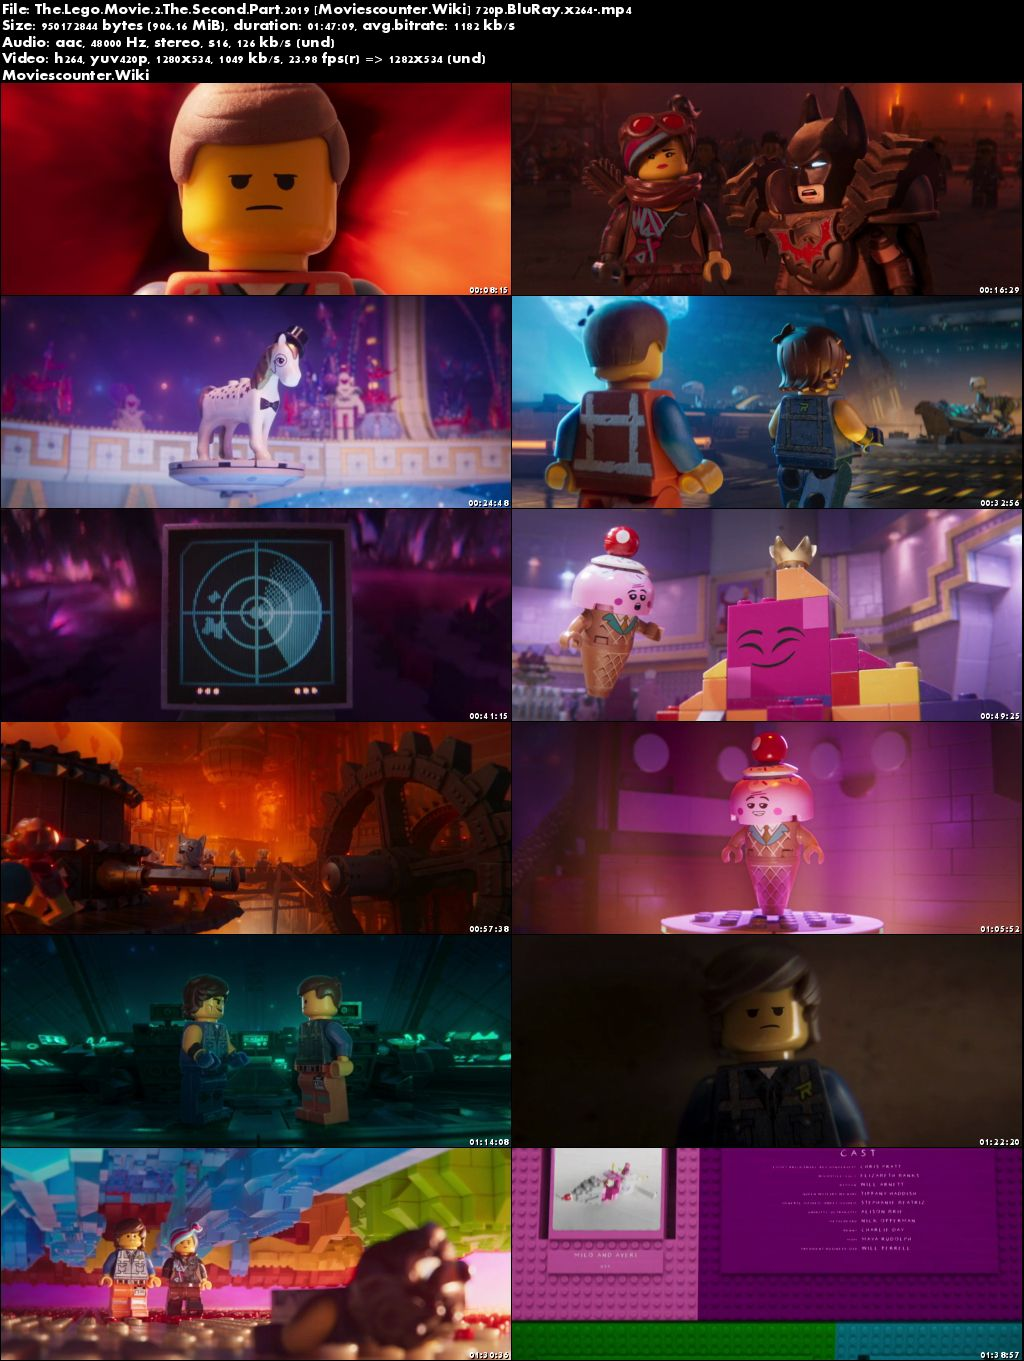 Screen Shots The Lego Movie 2: The Second Part 2019 English HD 720p